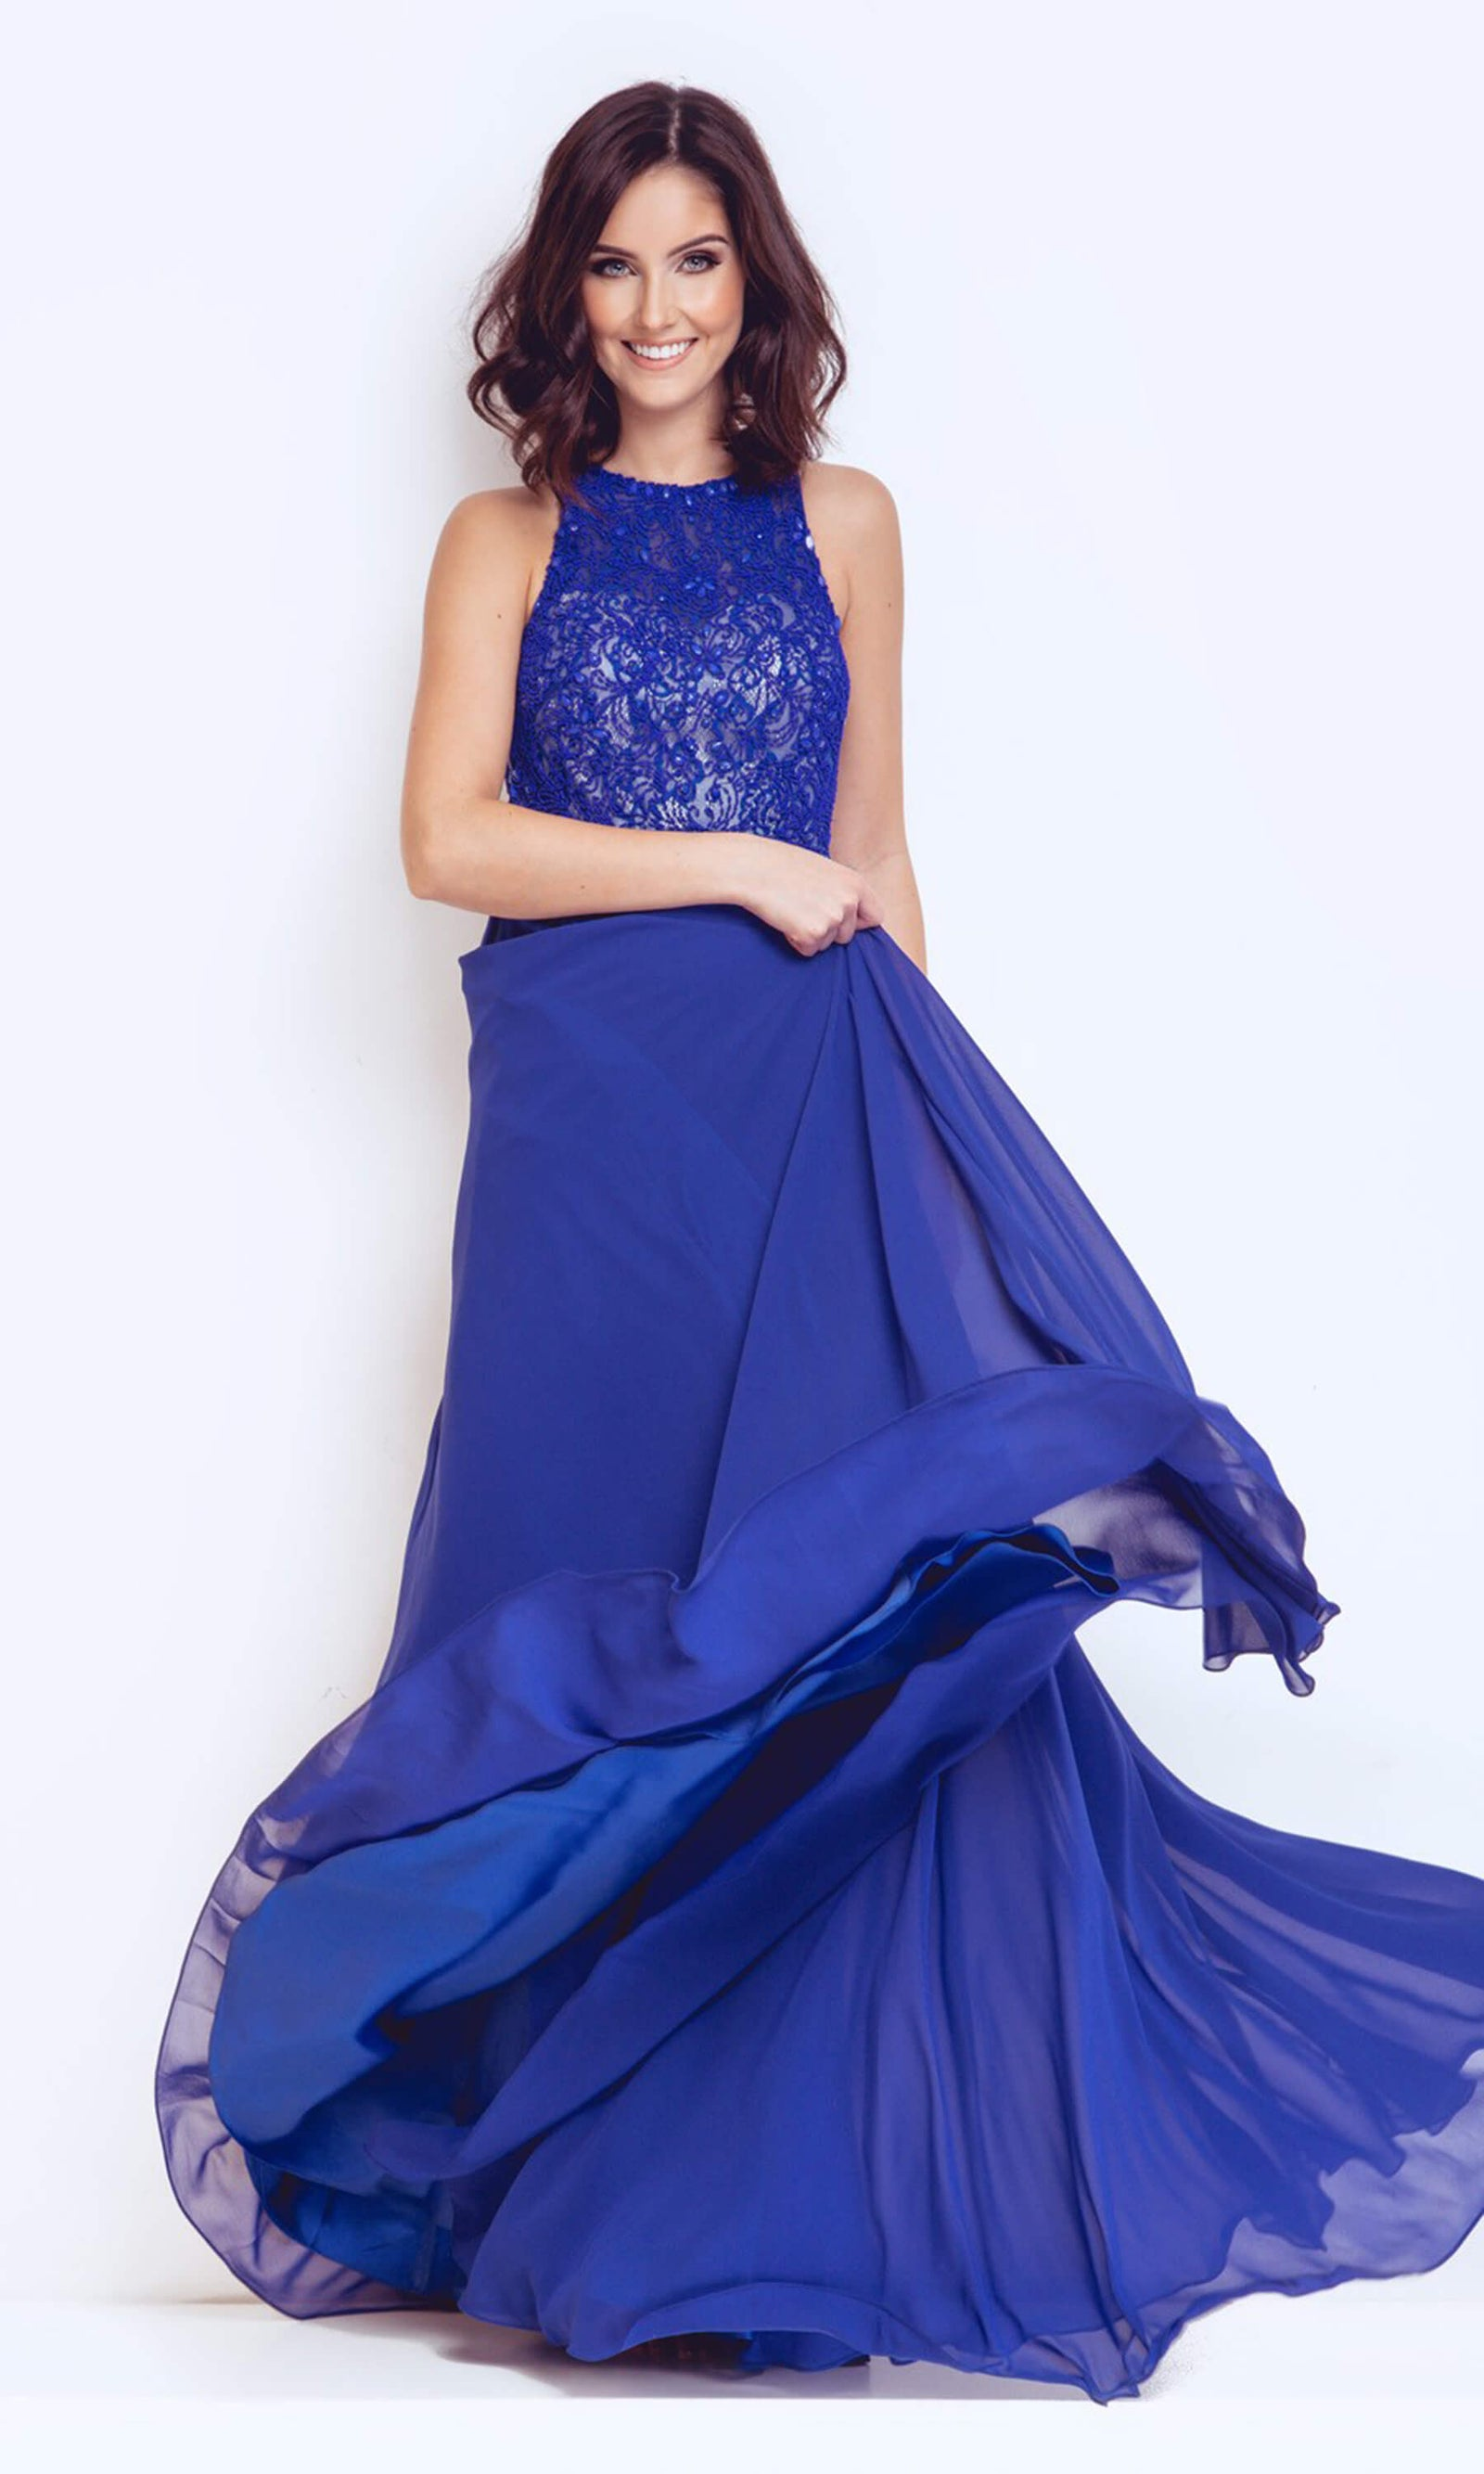 1023114 Royal Blue Dynasty Chiffon Dress With Lace Top - Fab Frocks